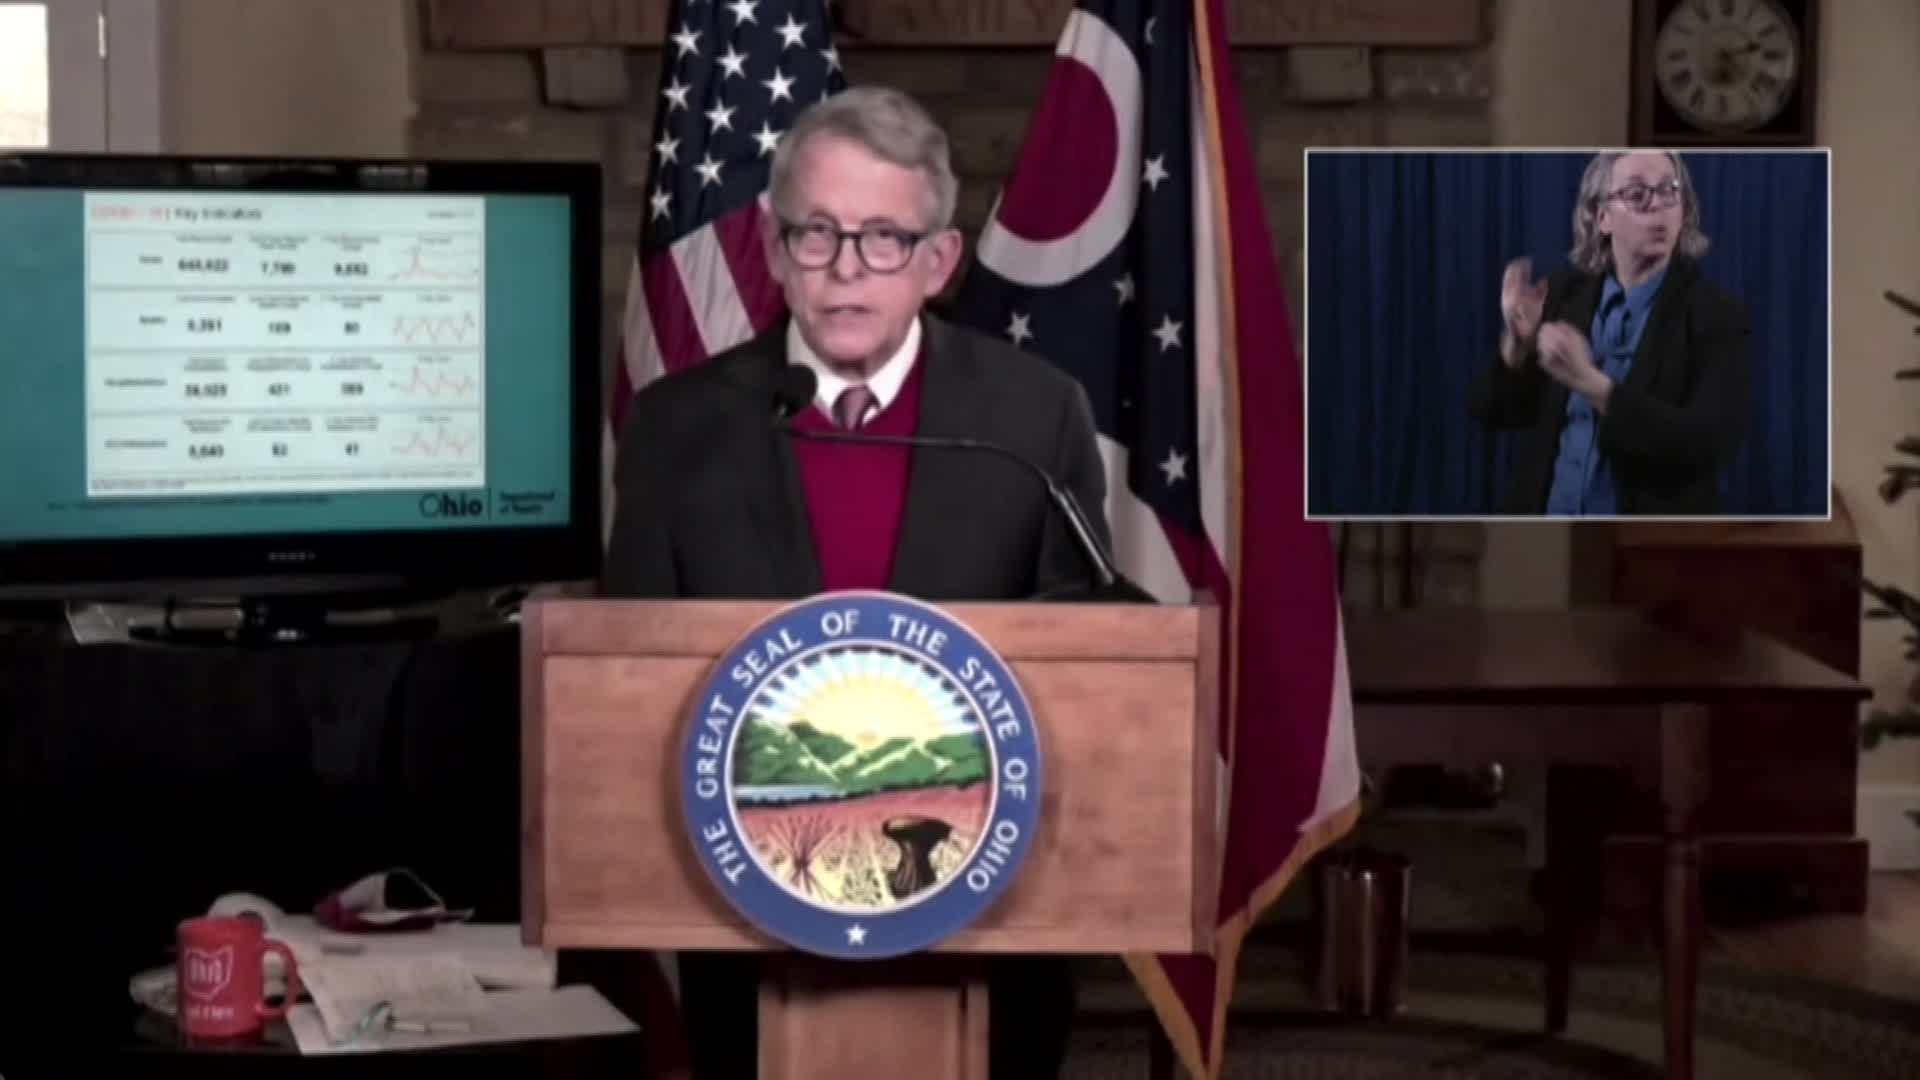 Ohio Gov. Mike DeWine speaks during a press conference in Cedarville, Ohio, on December 23.